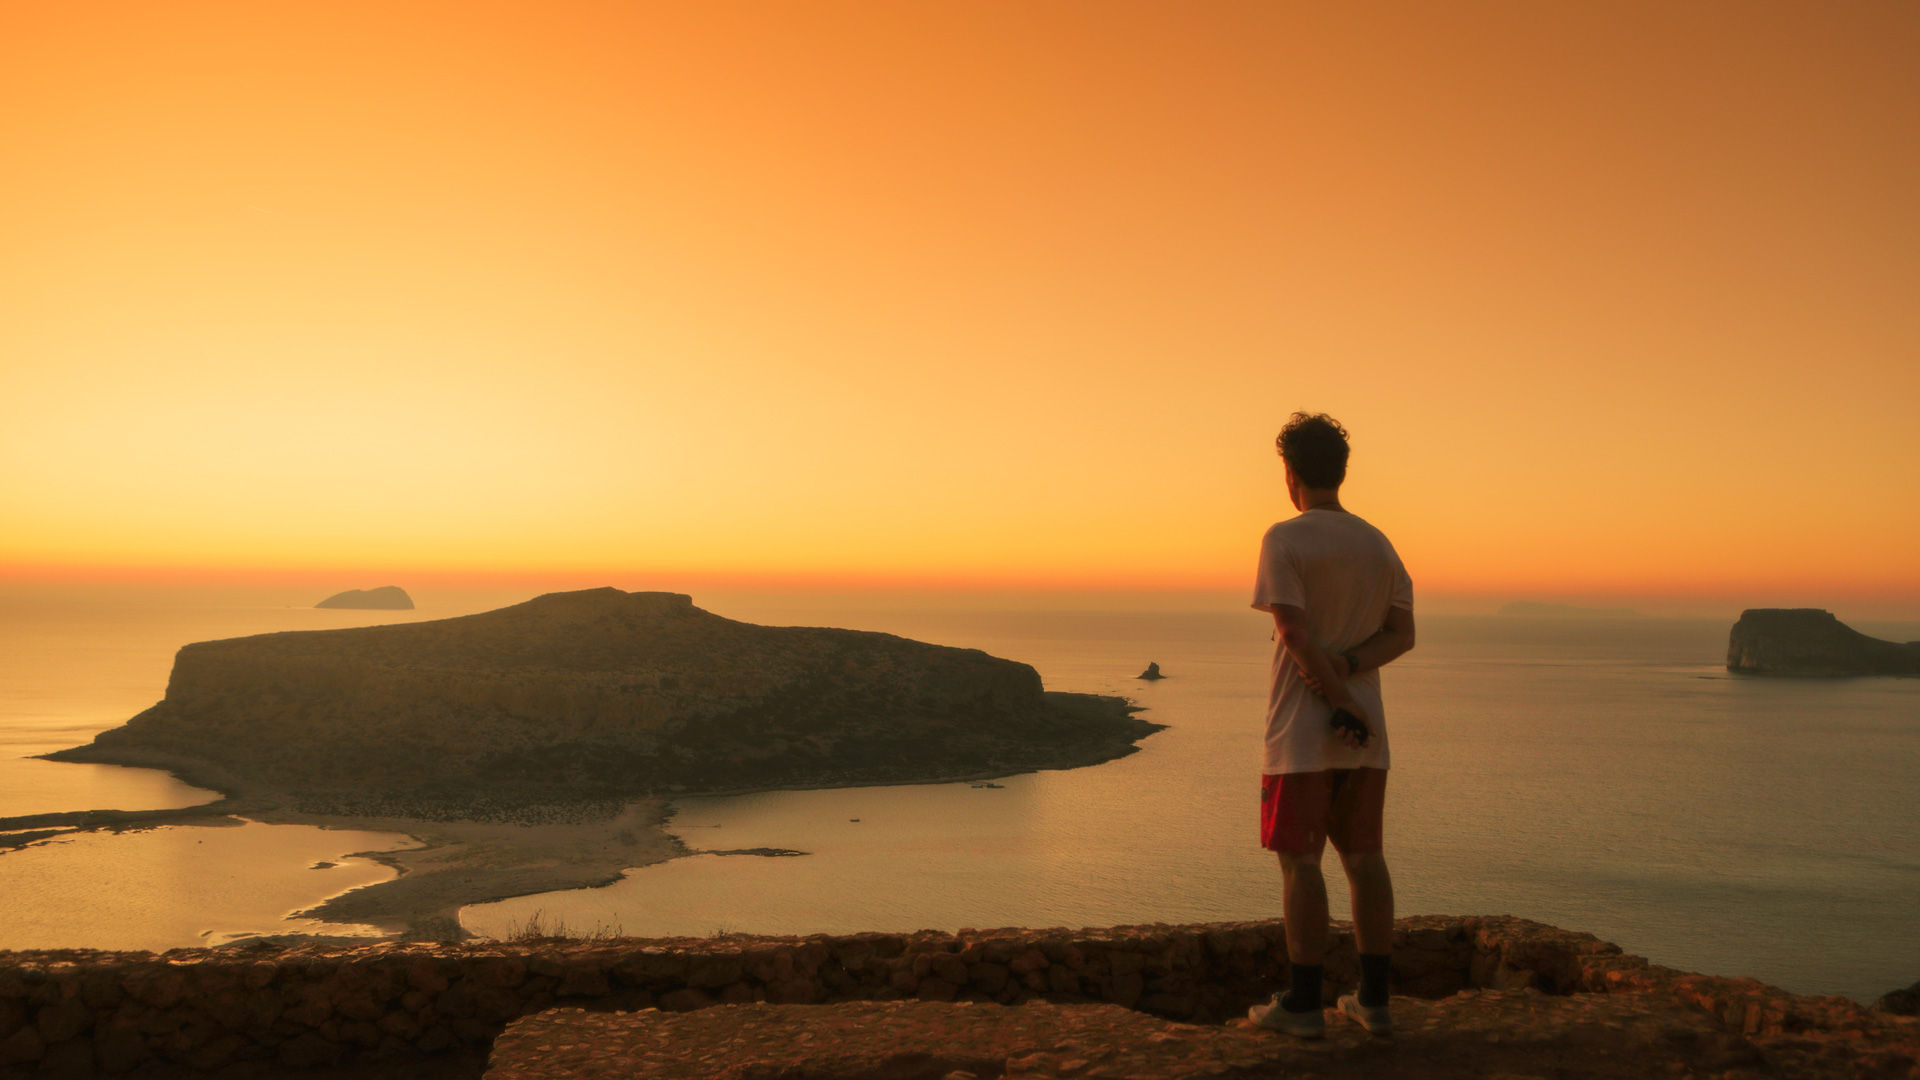 Watching the sunset at Balos beach from above, one of the most beautiful beaches of Crete and Europe